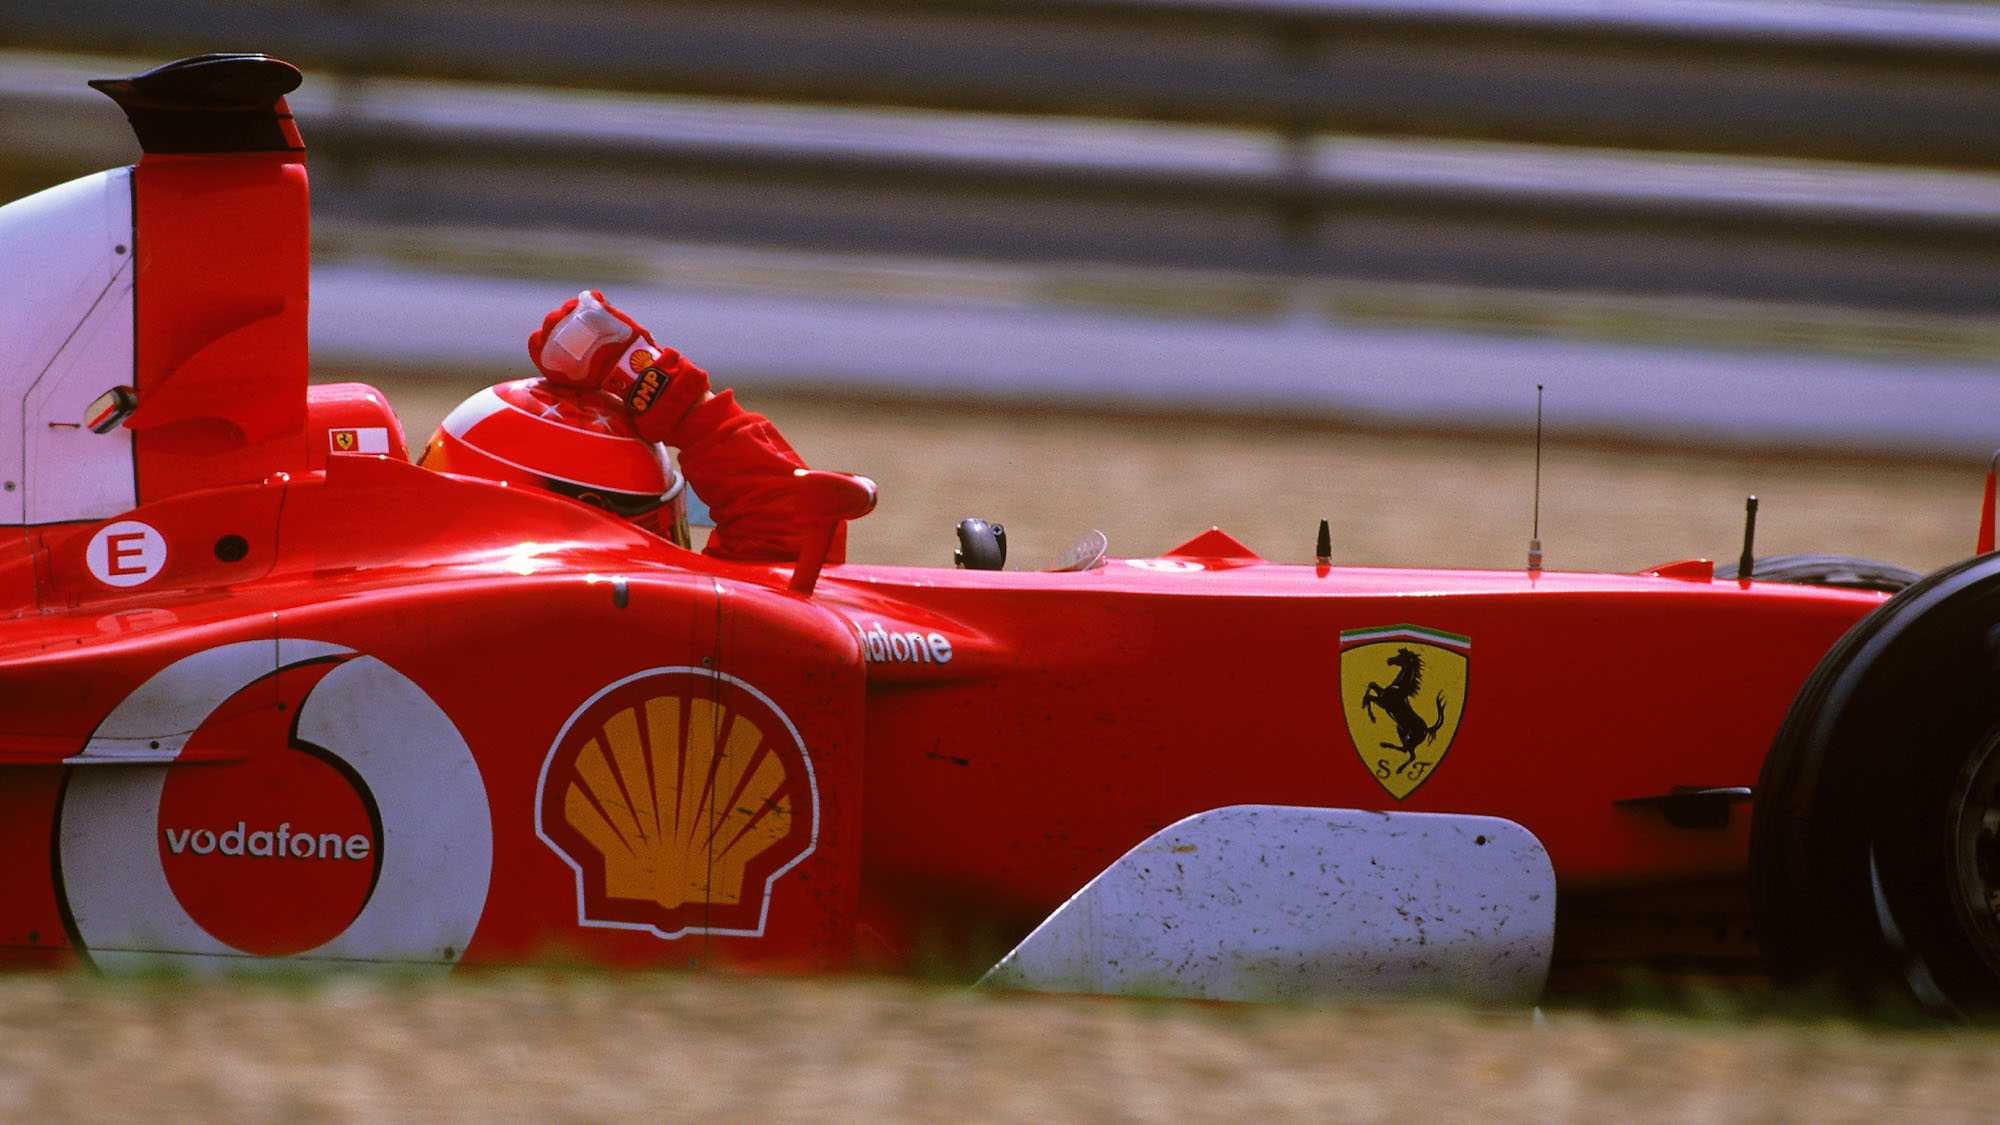 MAGNY-COURS - 21 JULY: Ferrari driver Michael Schumacher celebrates victory in the Formula One French Grand Prix at Magny-Cours in Nevers, France on July 21, 2002. Schumacher won the driver's championship to equal Fangio's record of 5 world titles. (photo by Bryn Lennon/Getty Images)